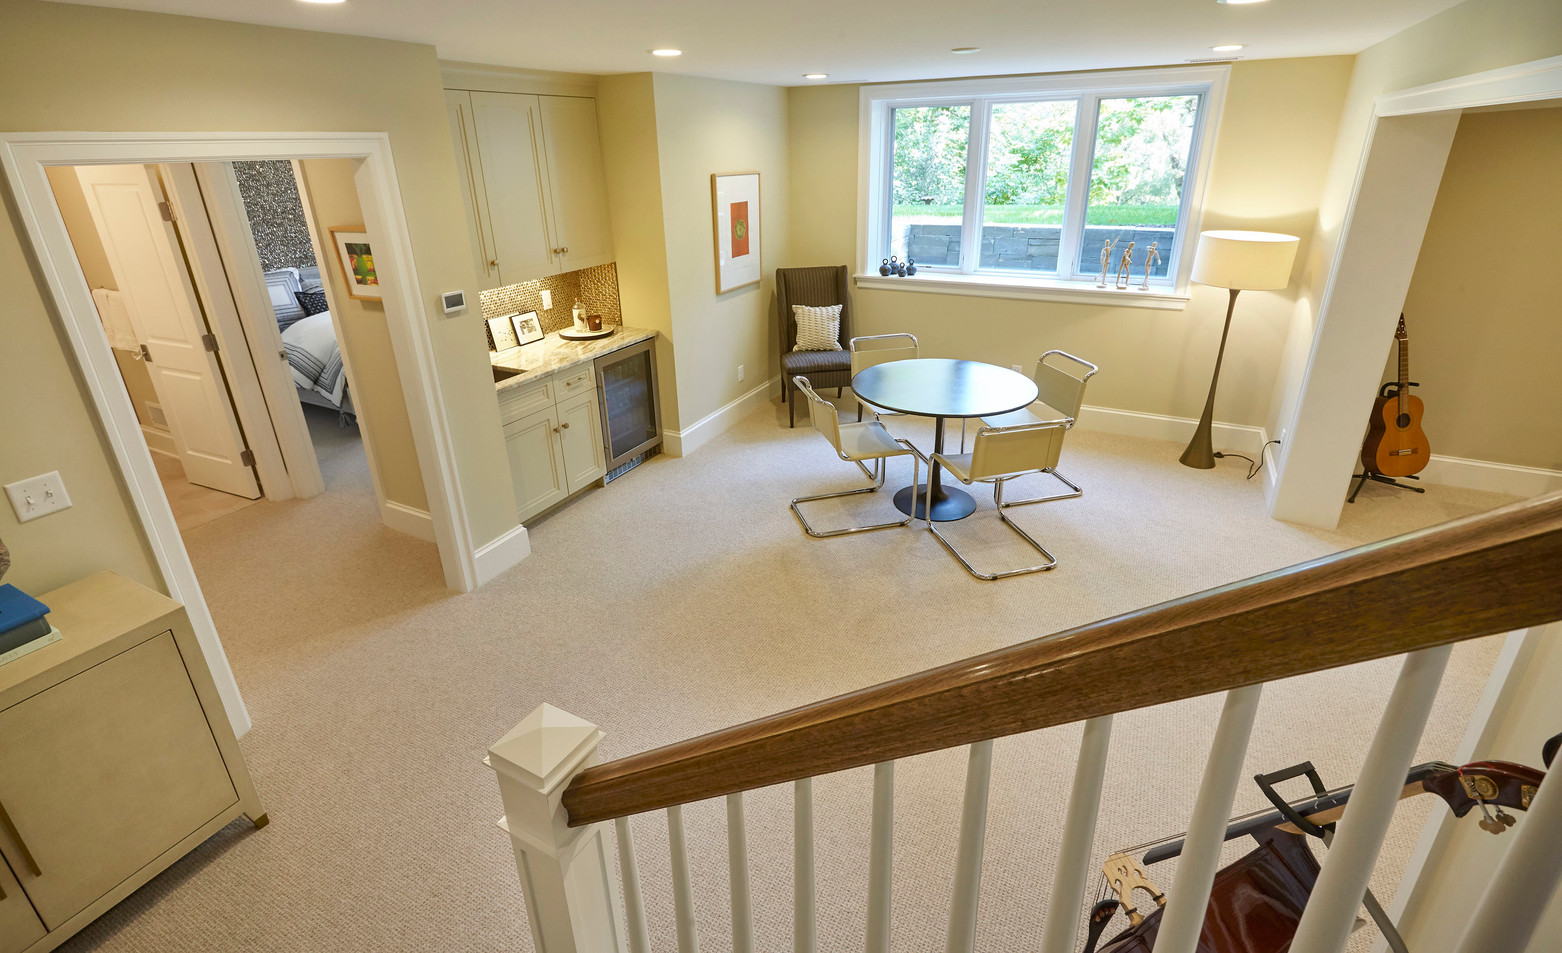 SC_60_Lower Level from stairs.jpg